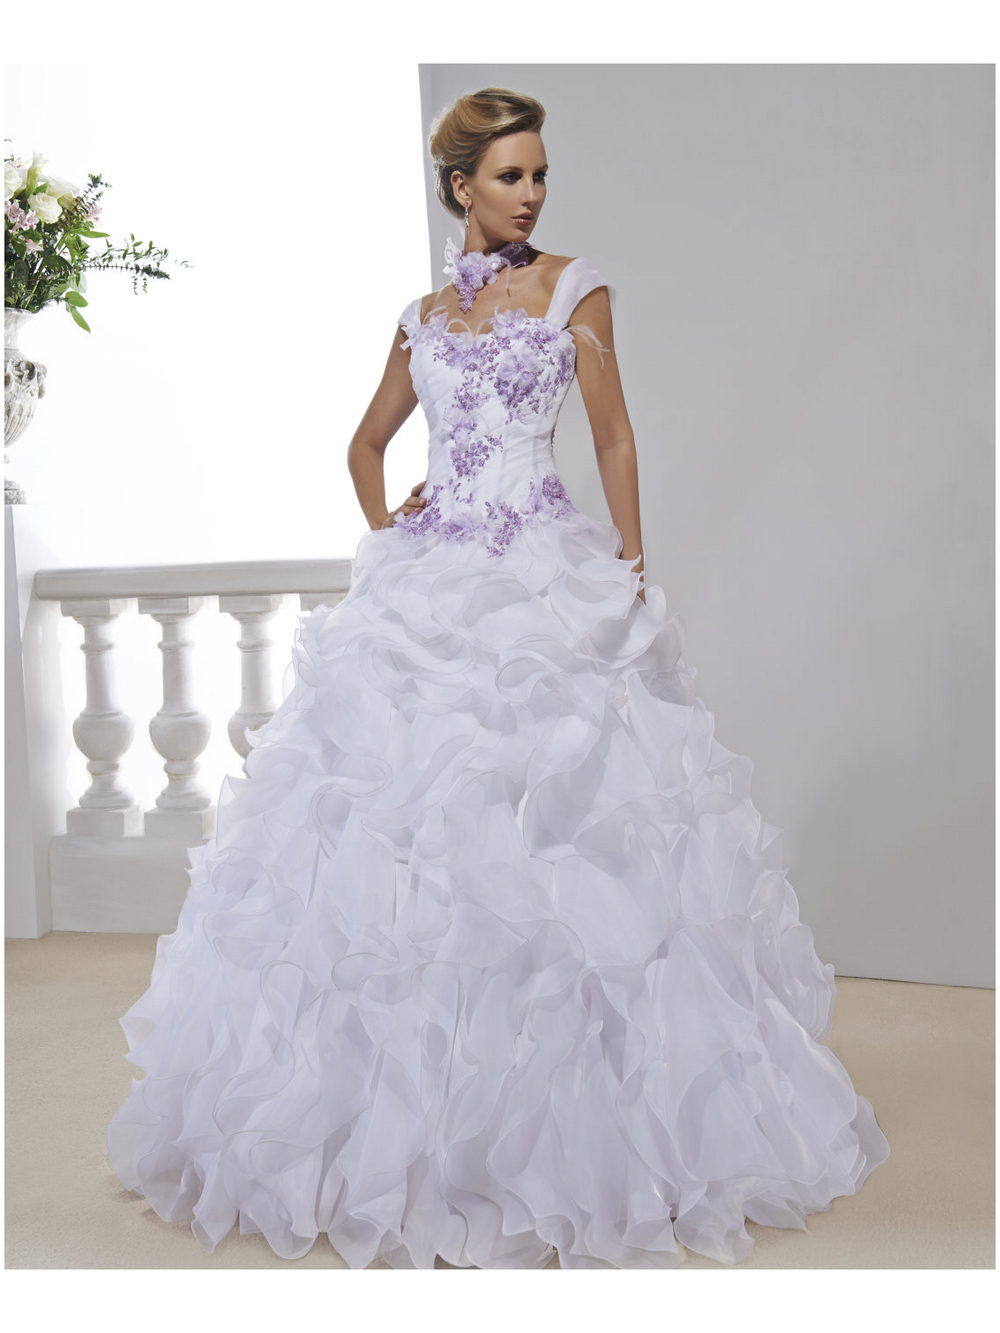 Robe mariee parme ivoire